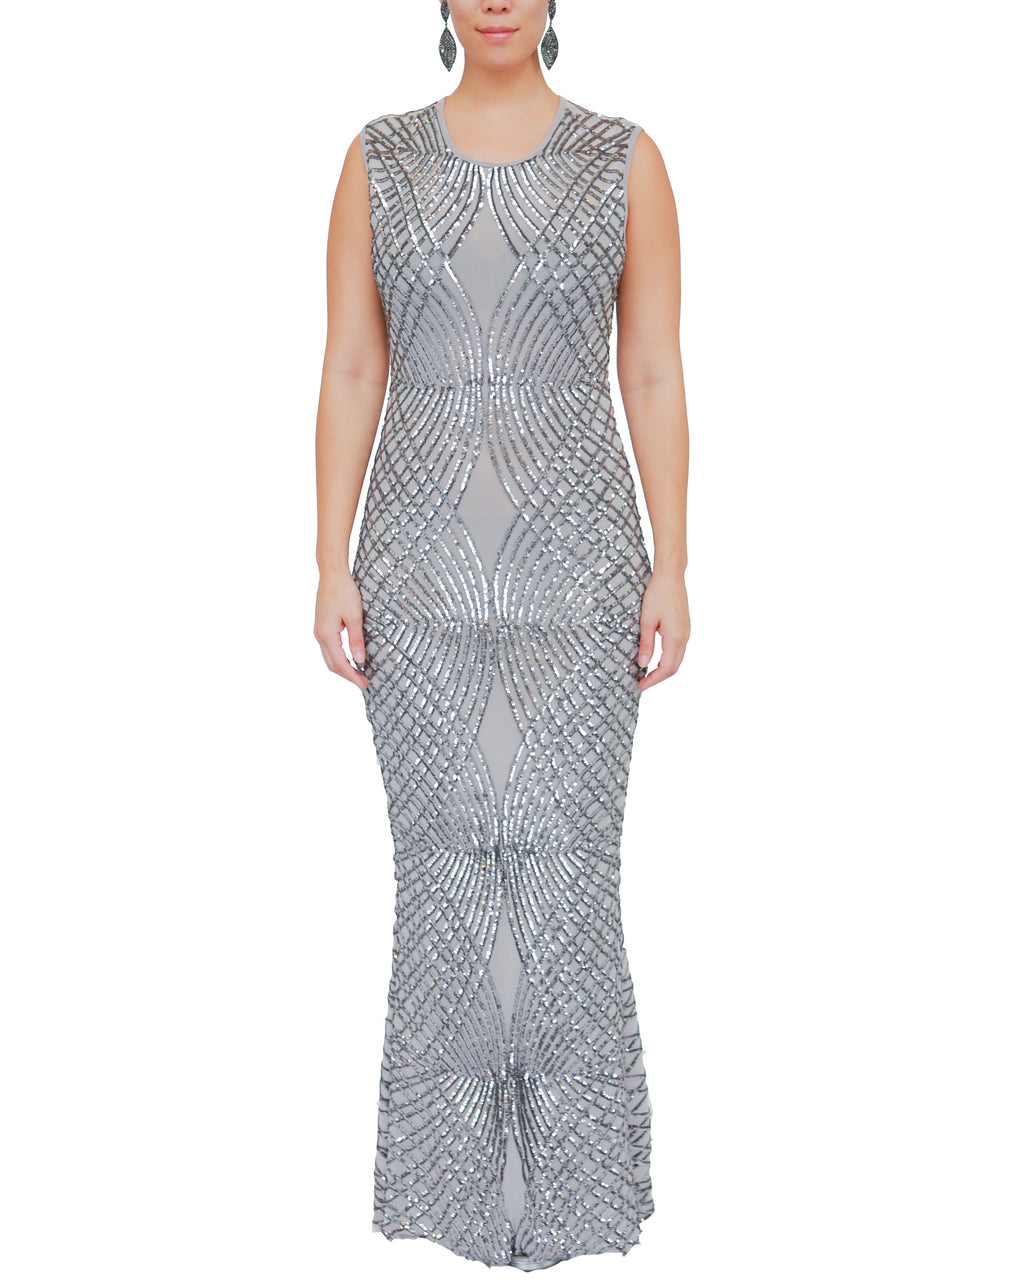 Stretch Sleeveless Patterned Sequin Gown